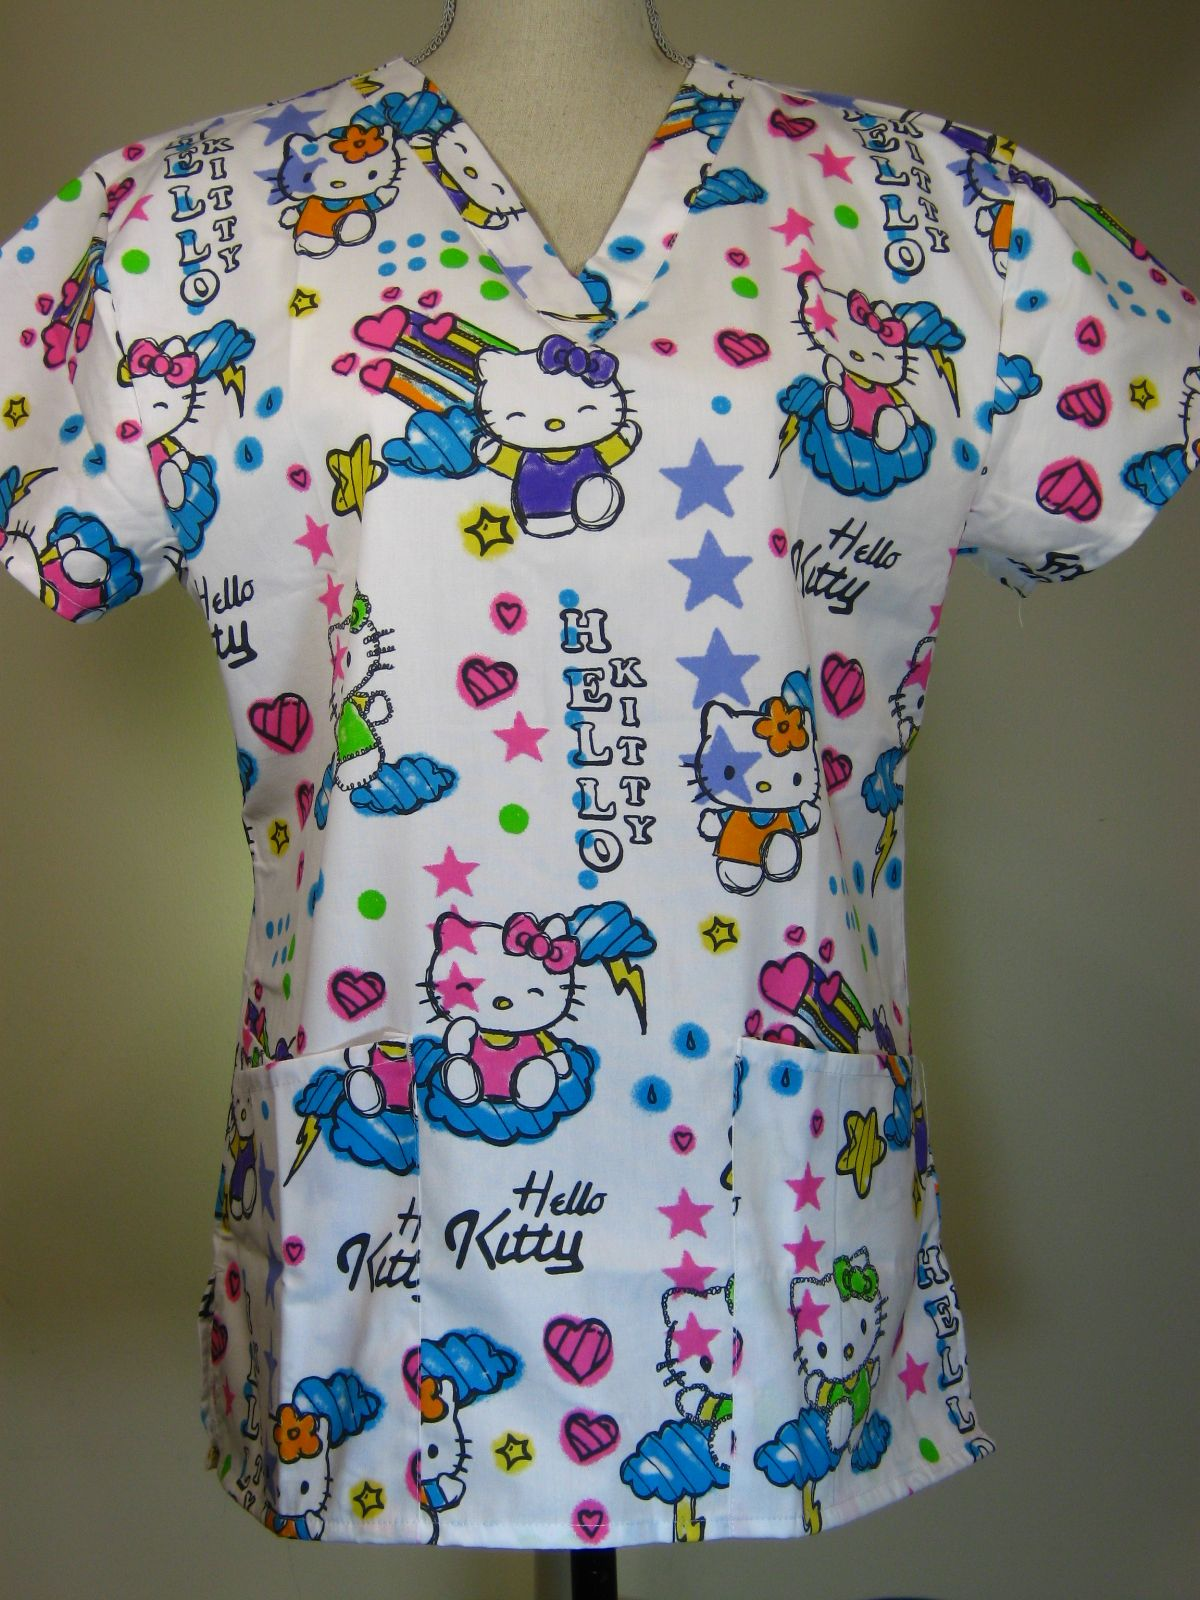 bfbb543318e #caringplus scrub top -Hello Kitty White- CaringPlus scrubs and uniforms -  workwear clothing for nurses, caregivers and other healthcare professionals.